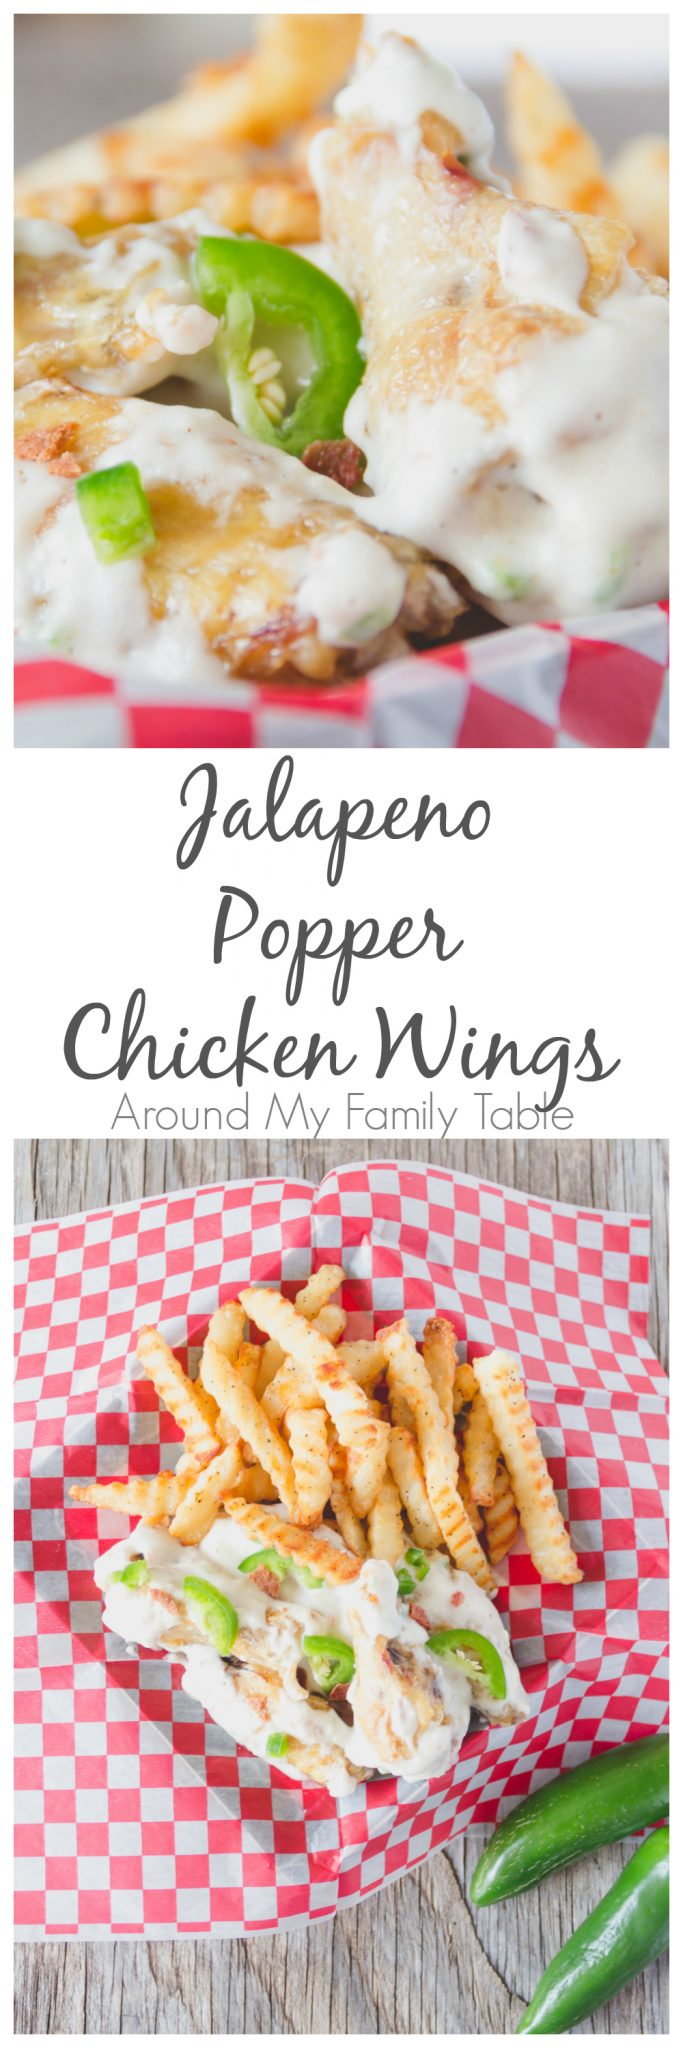 What happens when you have a love of chicken wings and jalapeno poppers? You make Jalapeno Popper Chicken Wings!